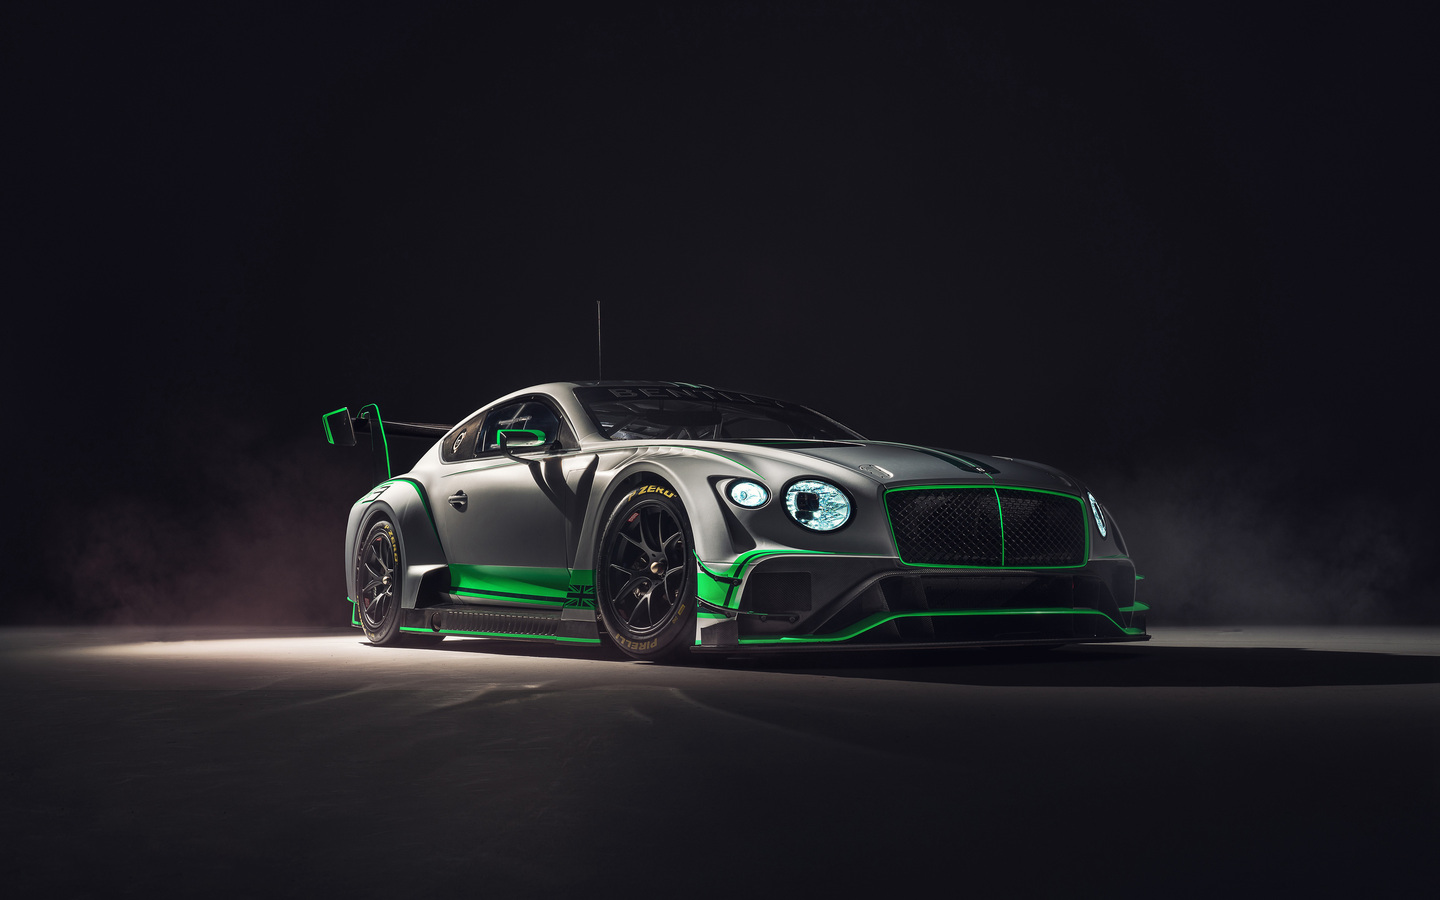 bentley-continental-gt3-2018-34.jpg